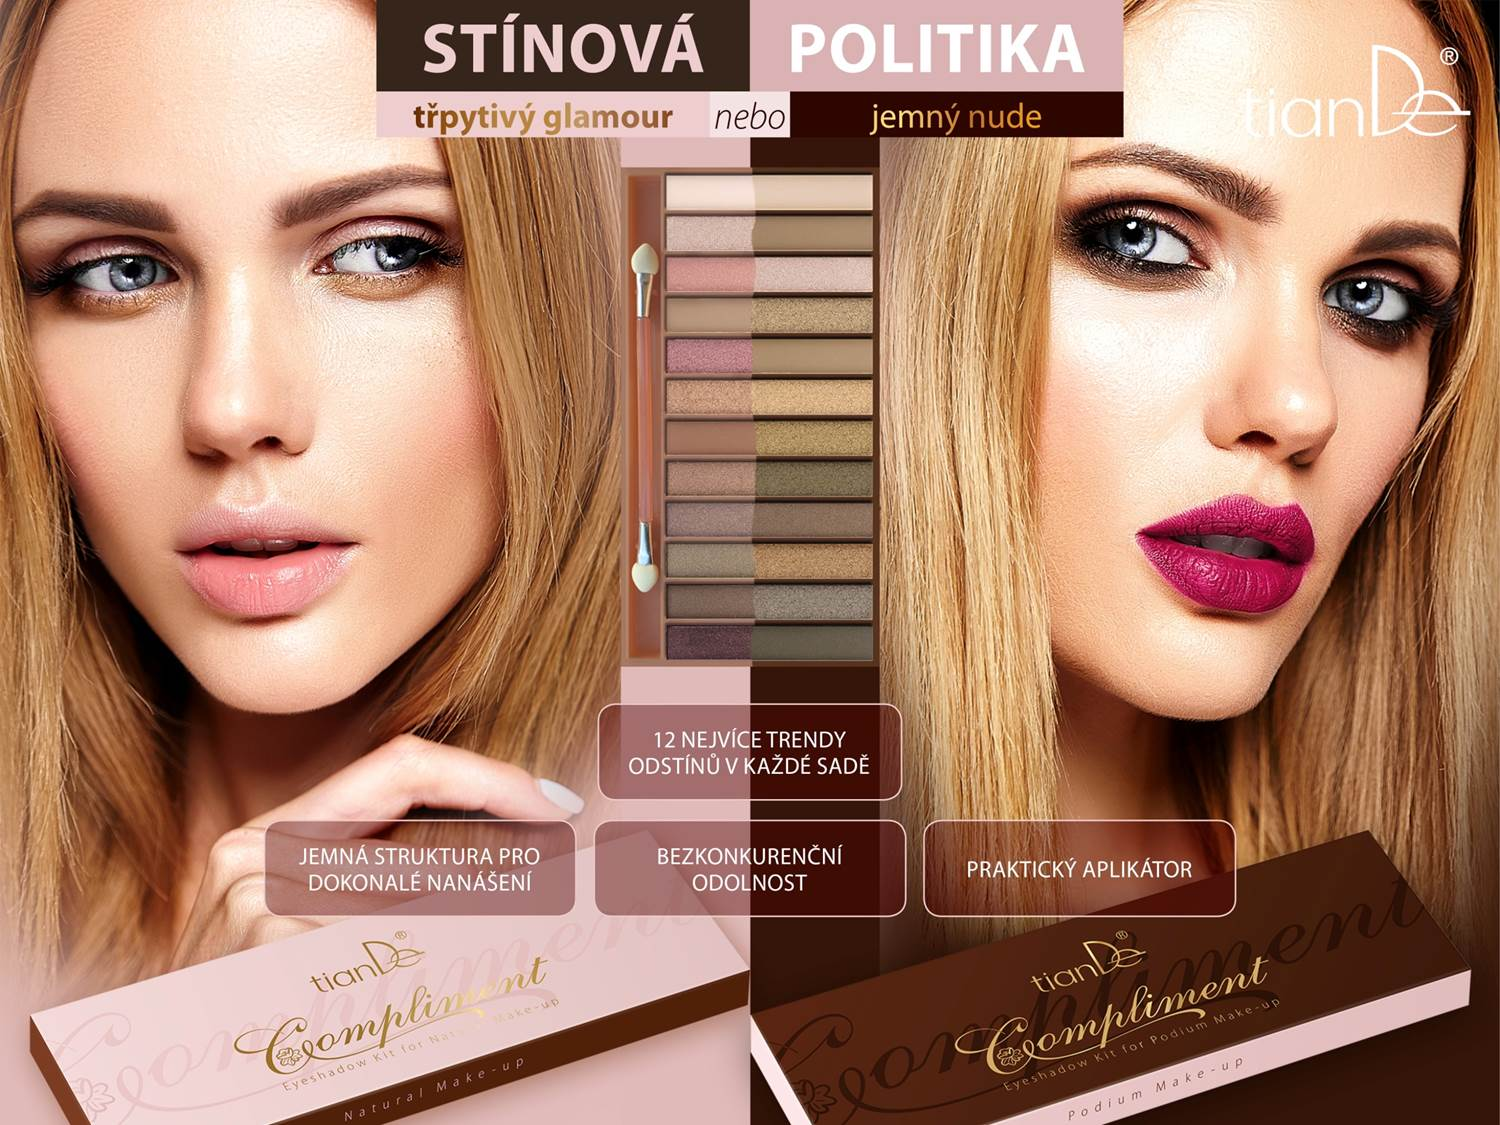 Eyeshadow Kit for Podium and Natural Make-up